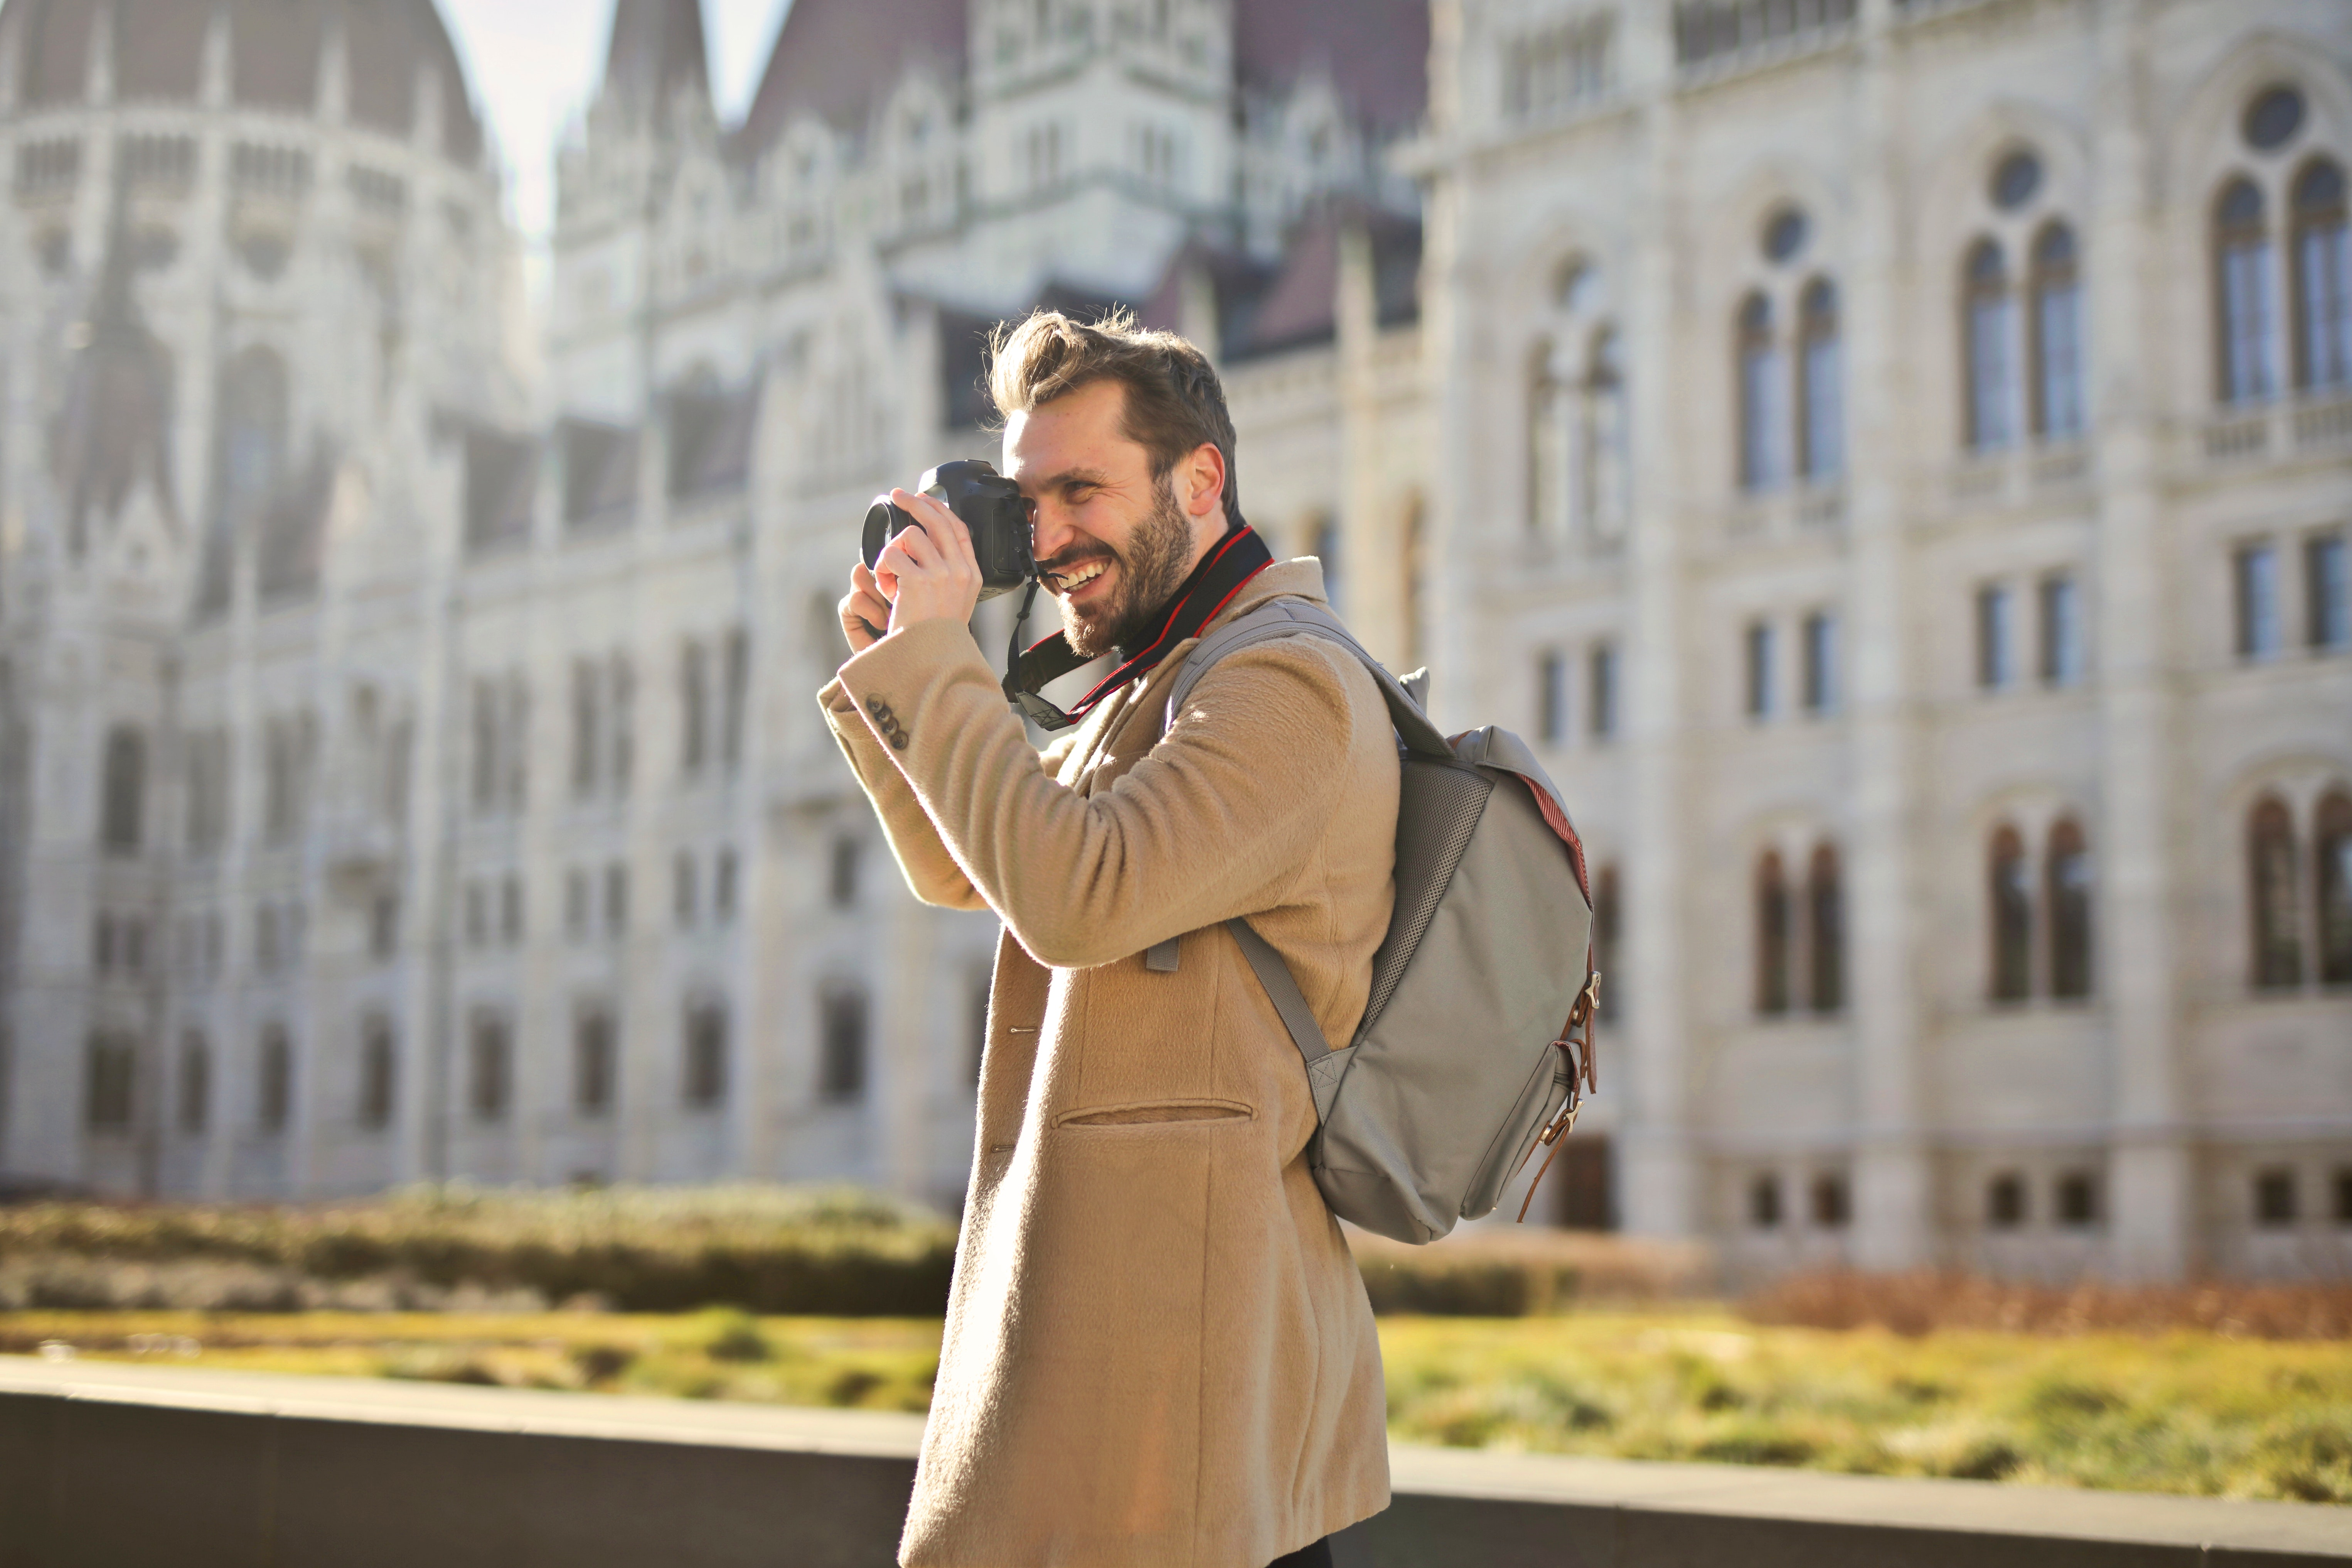 Man holding and capturing images around him photo